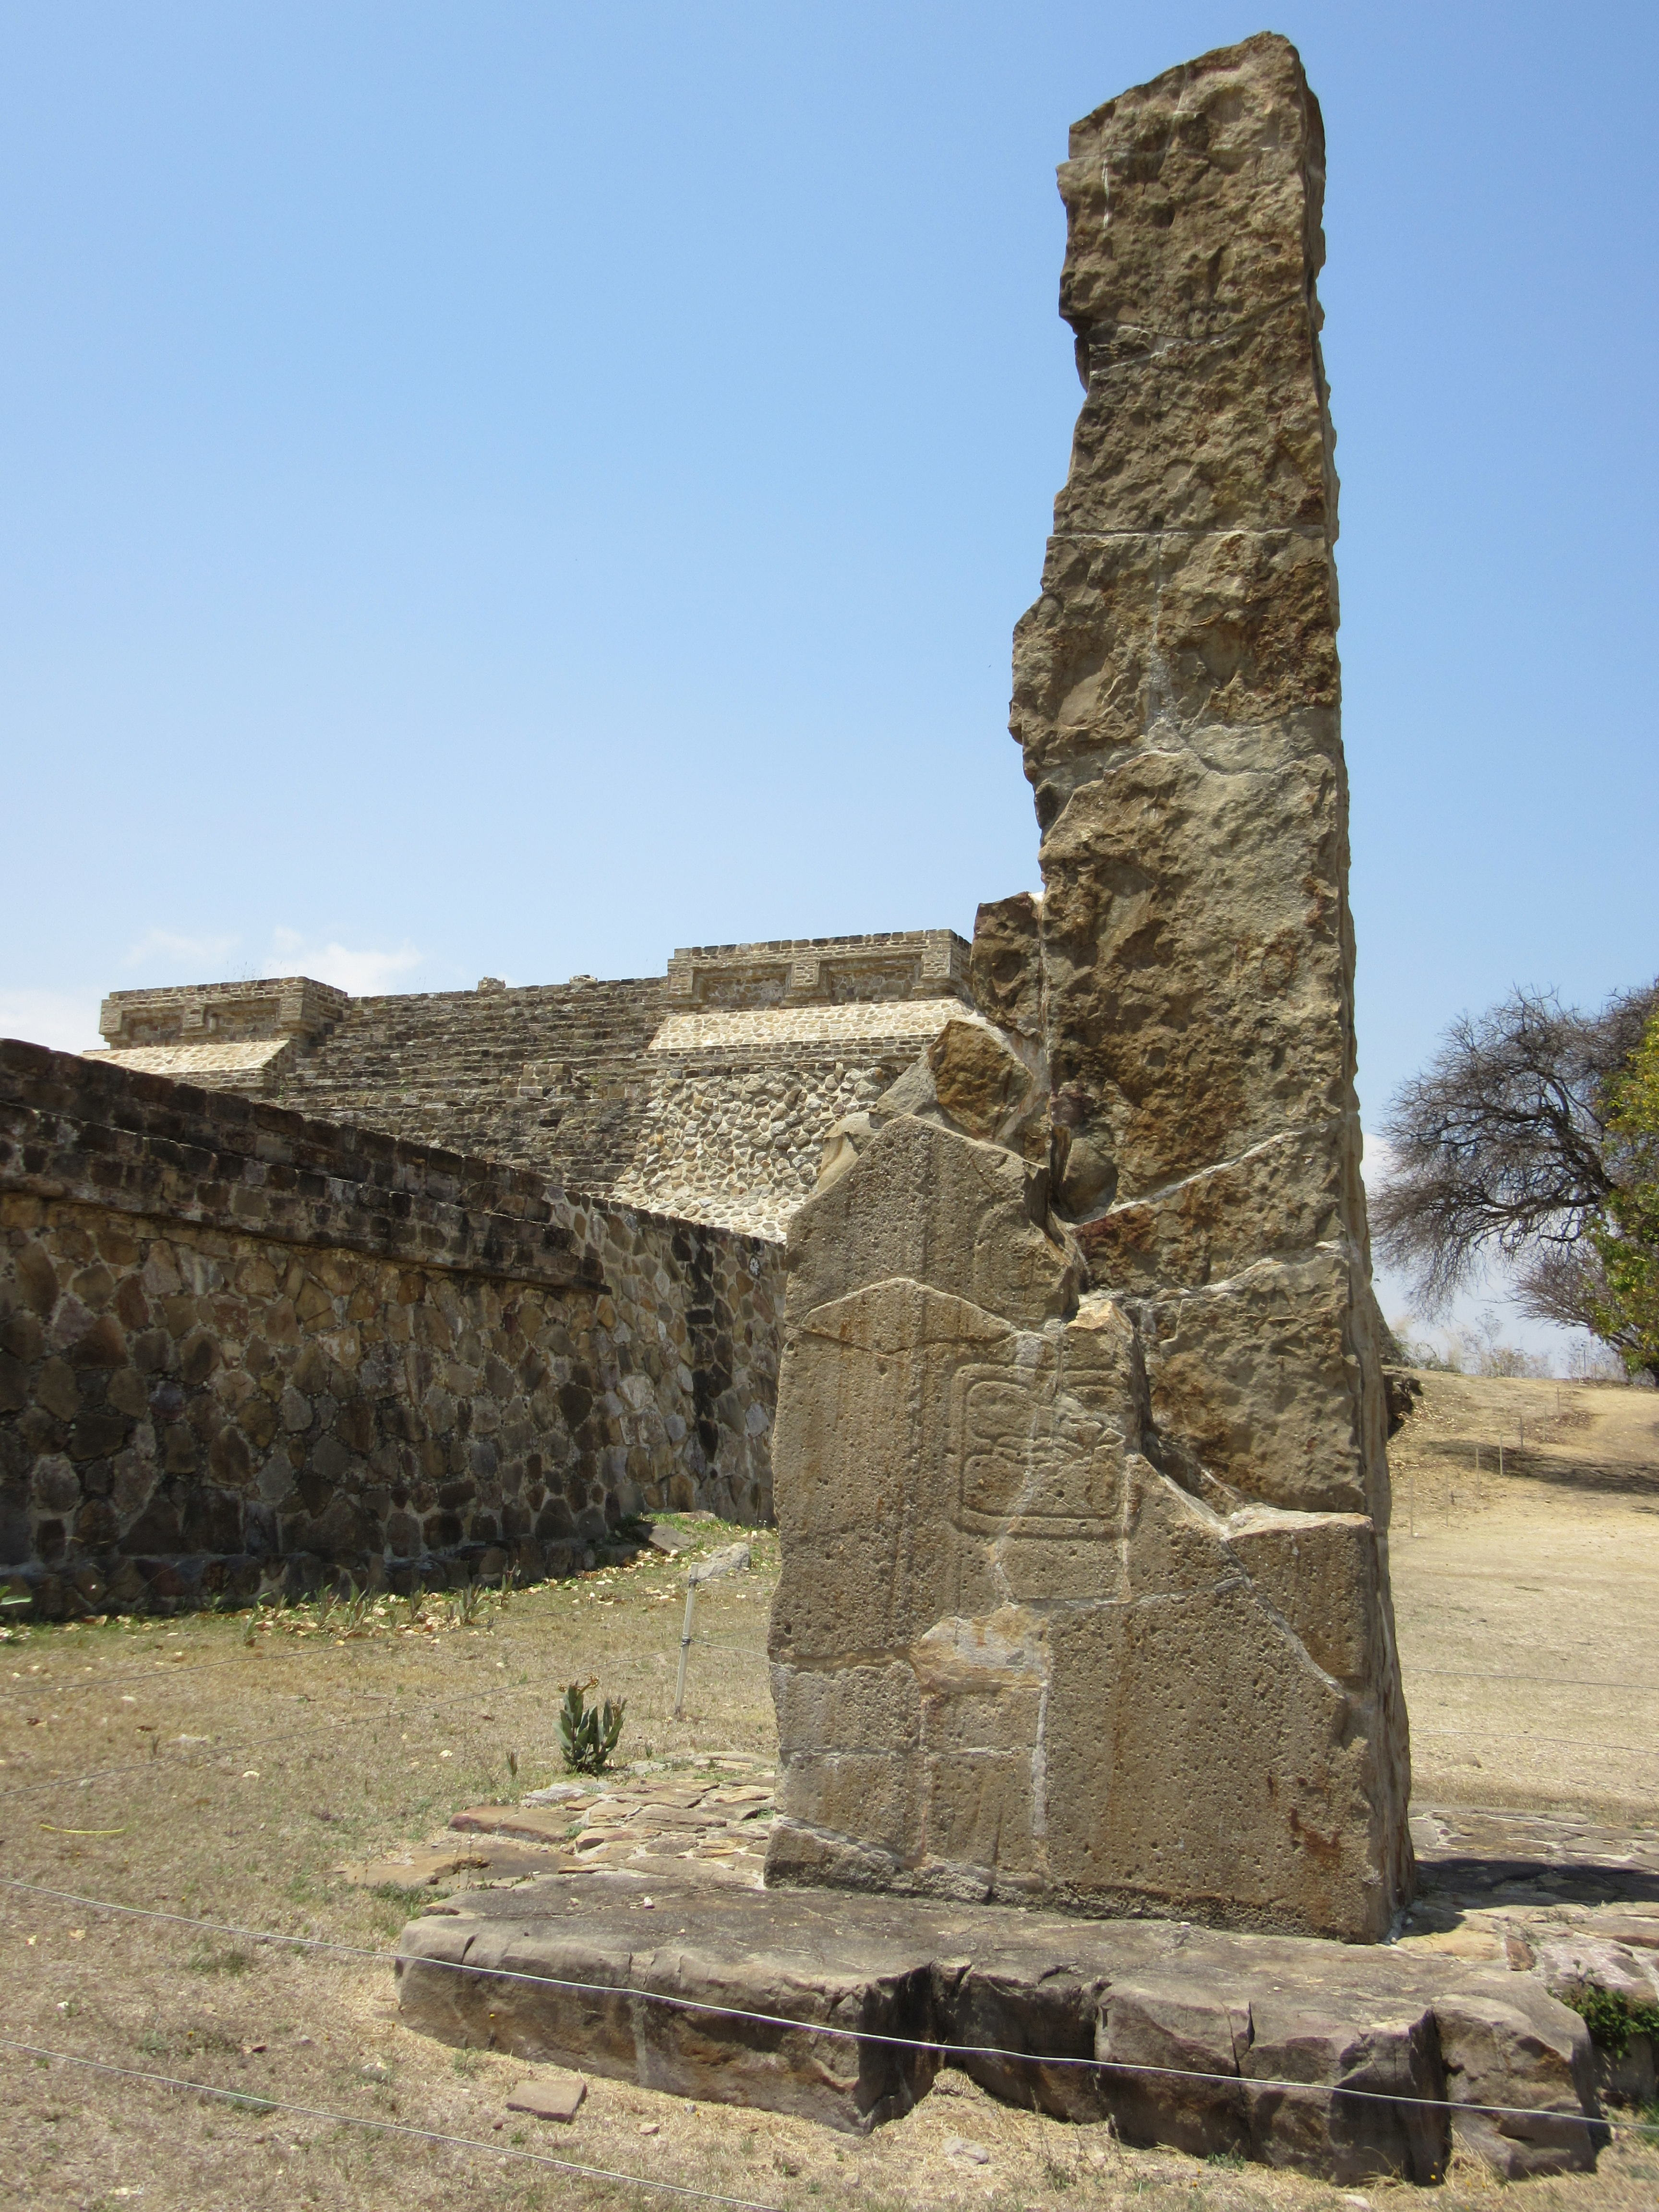 Stela 18 - also a solar observatory